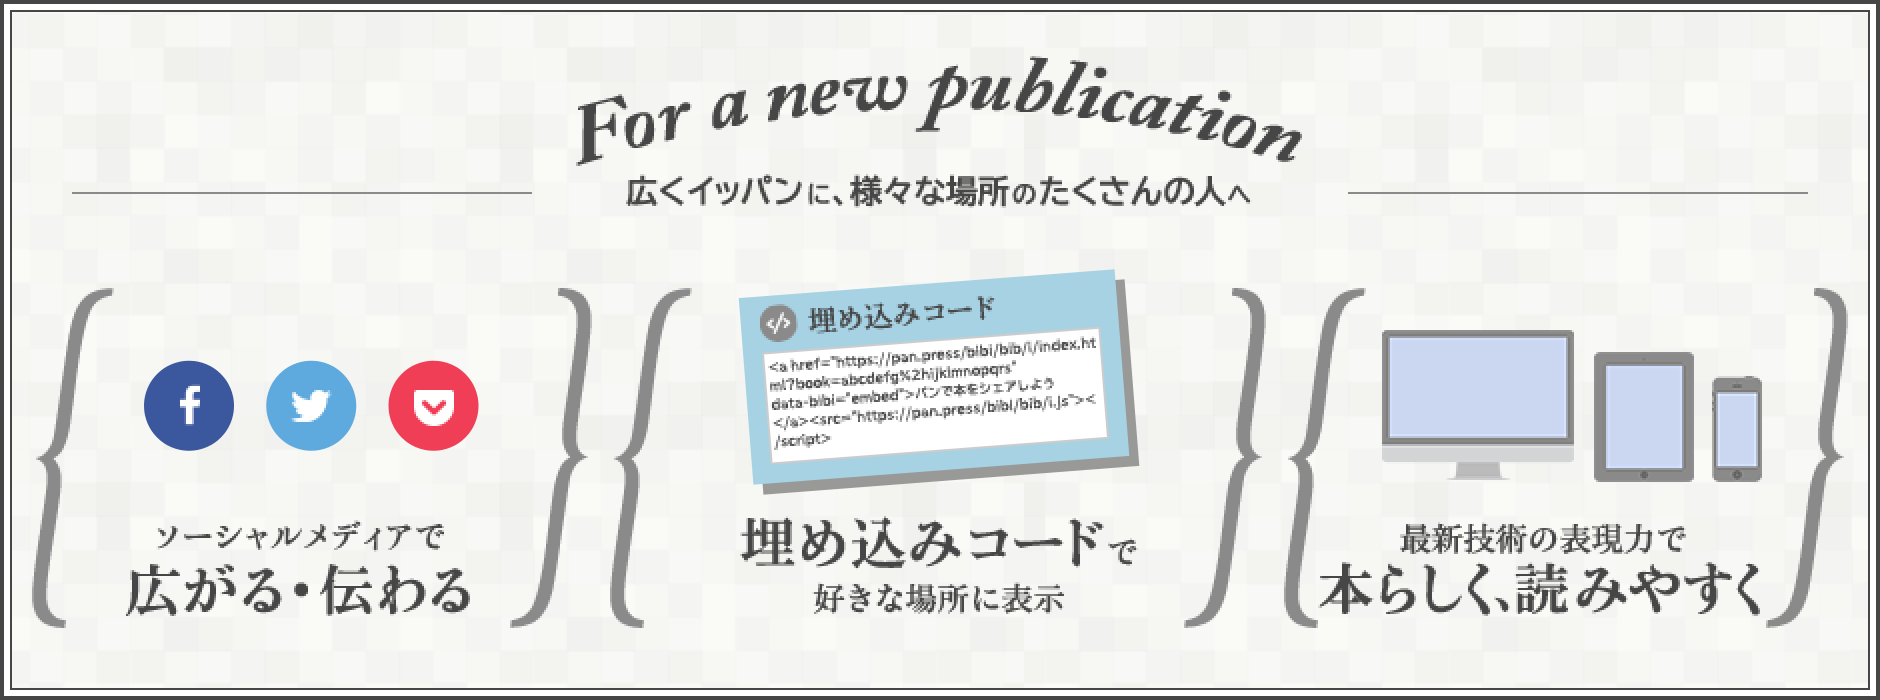 For a new publication 広くイッパンに、様々な場所のたくさんの人へ